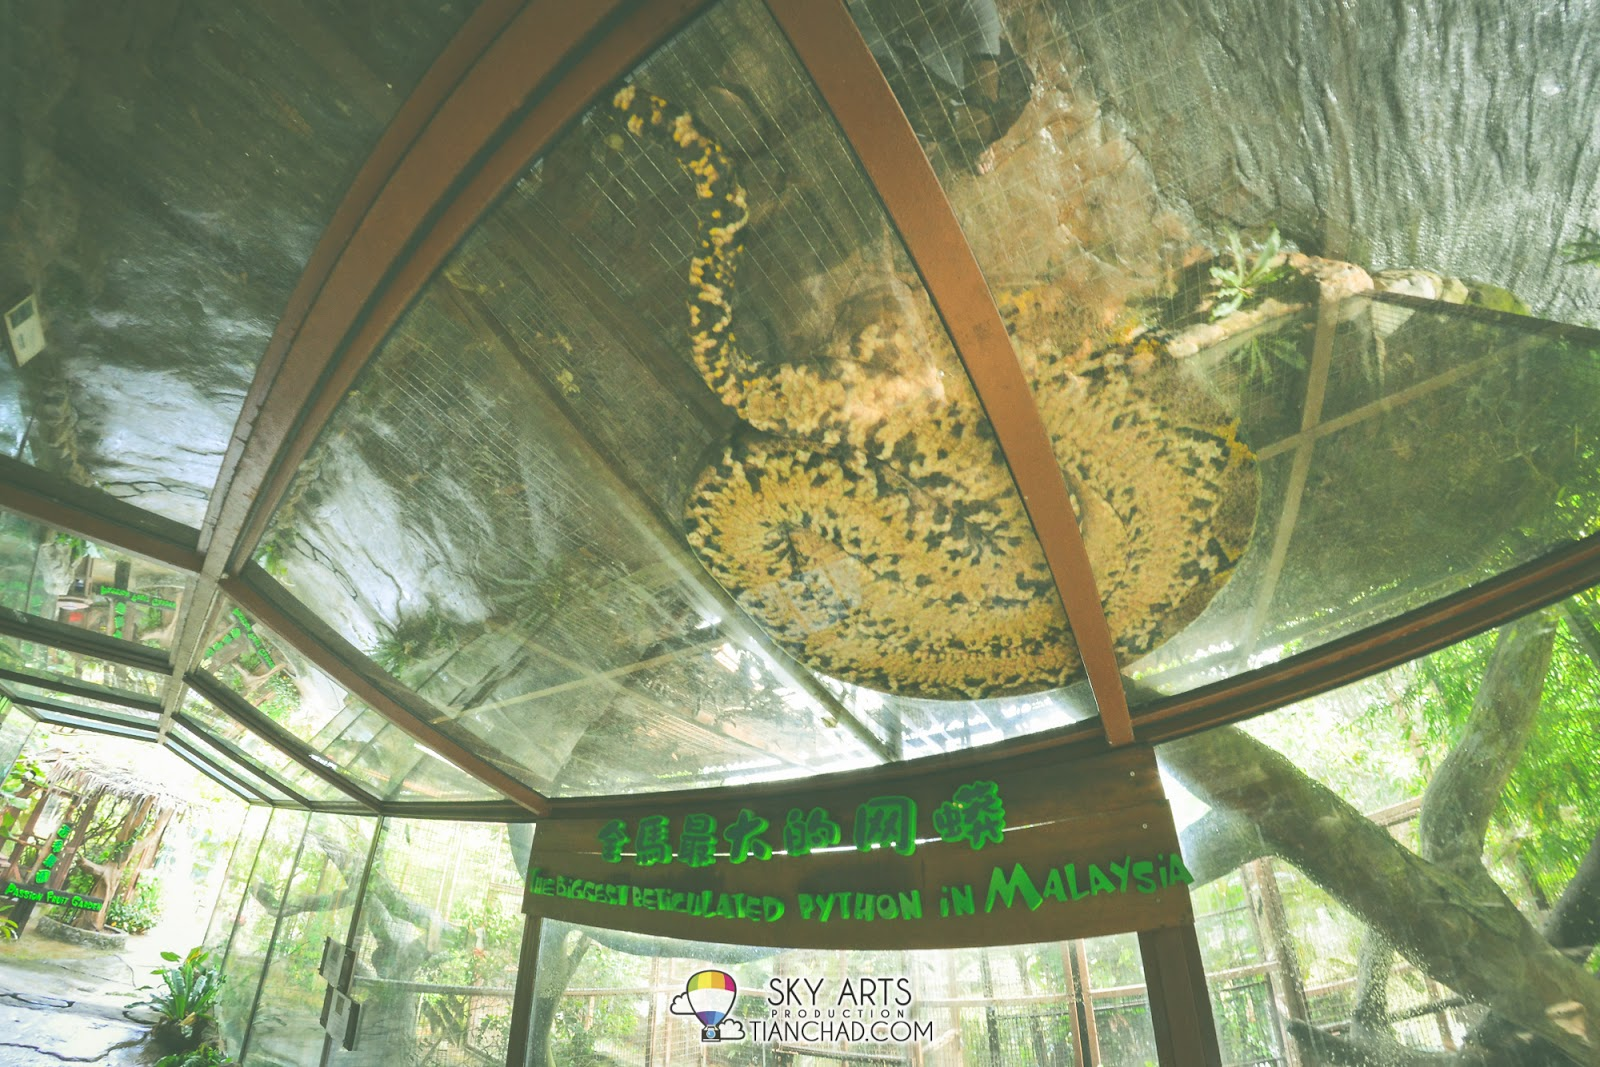 A big python resting on the top of the glass house